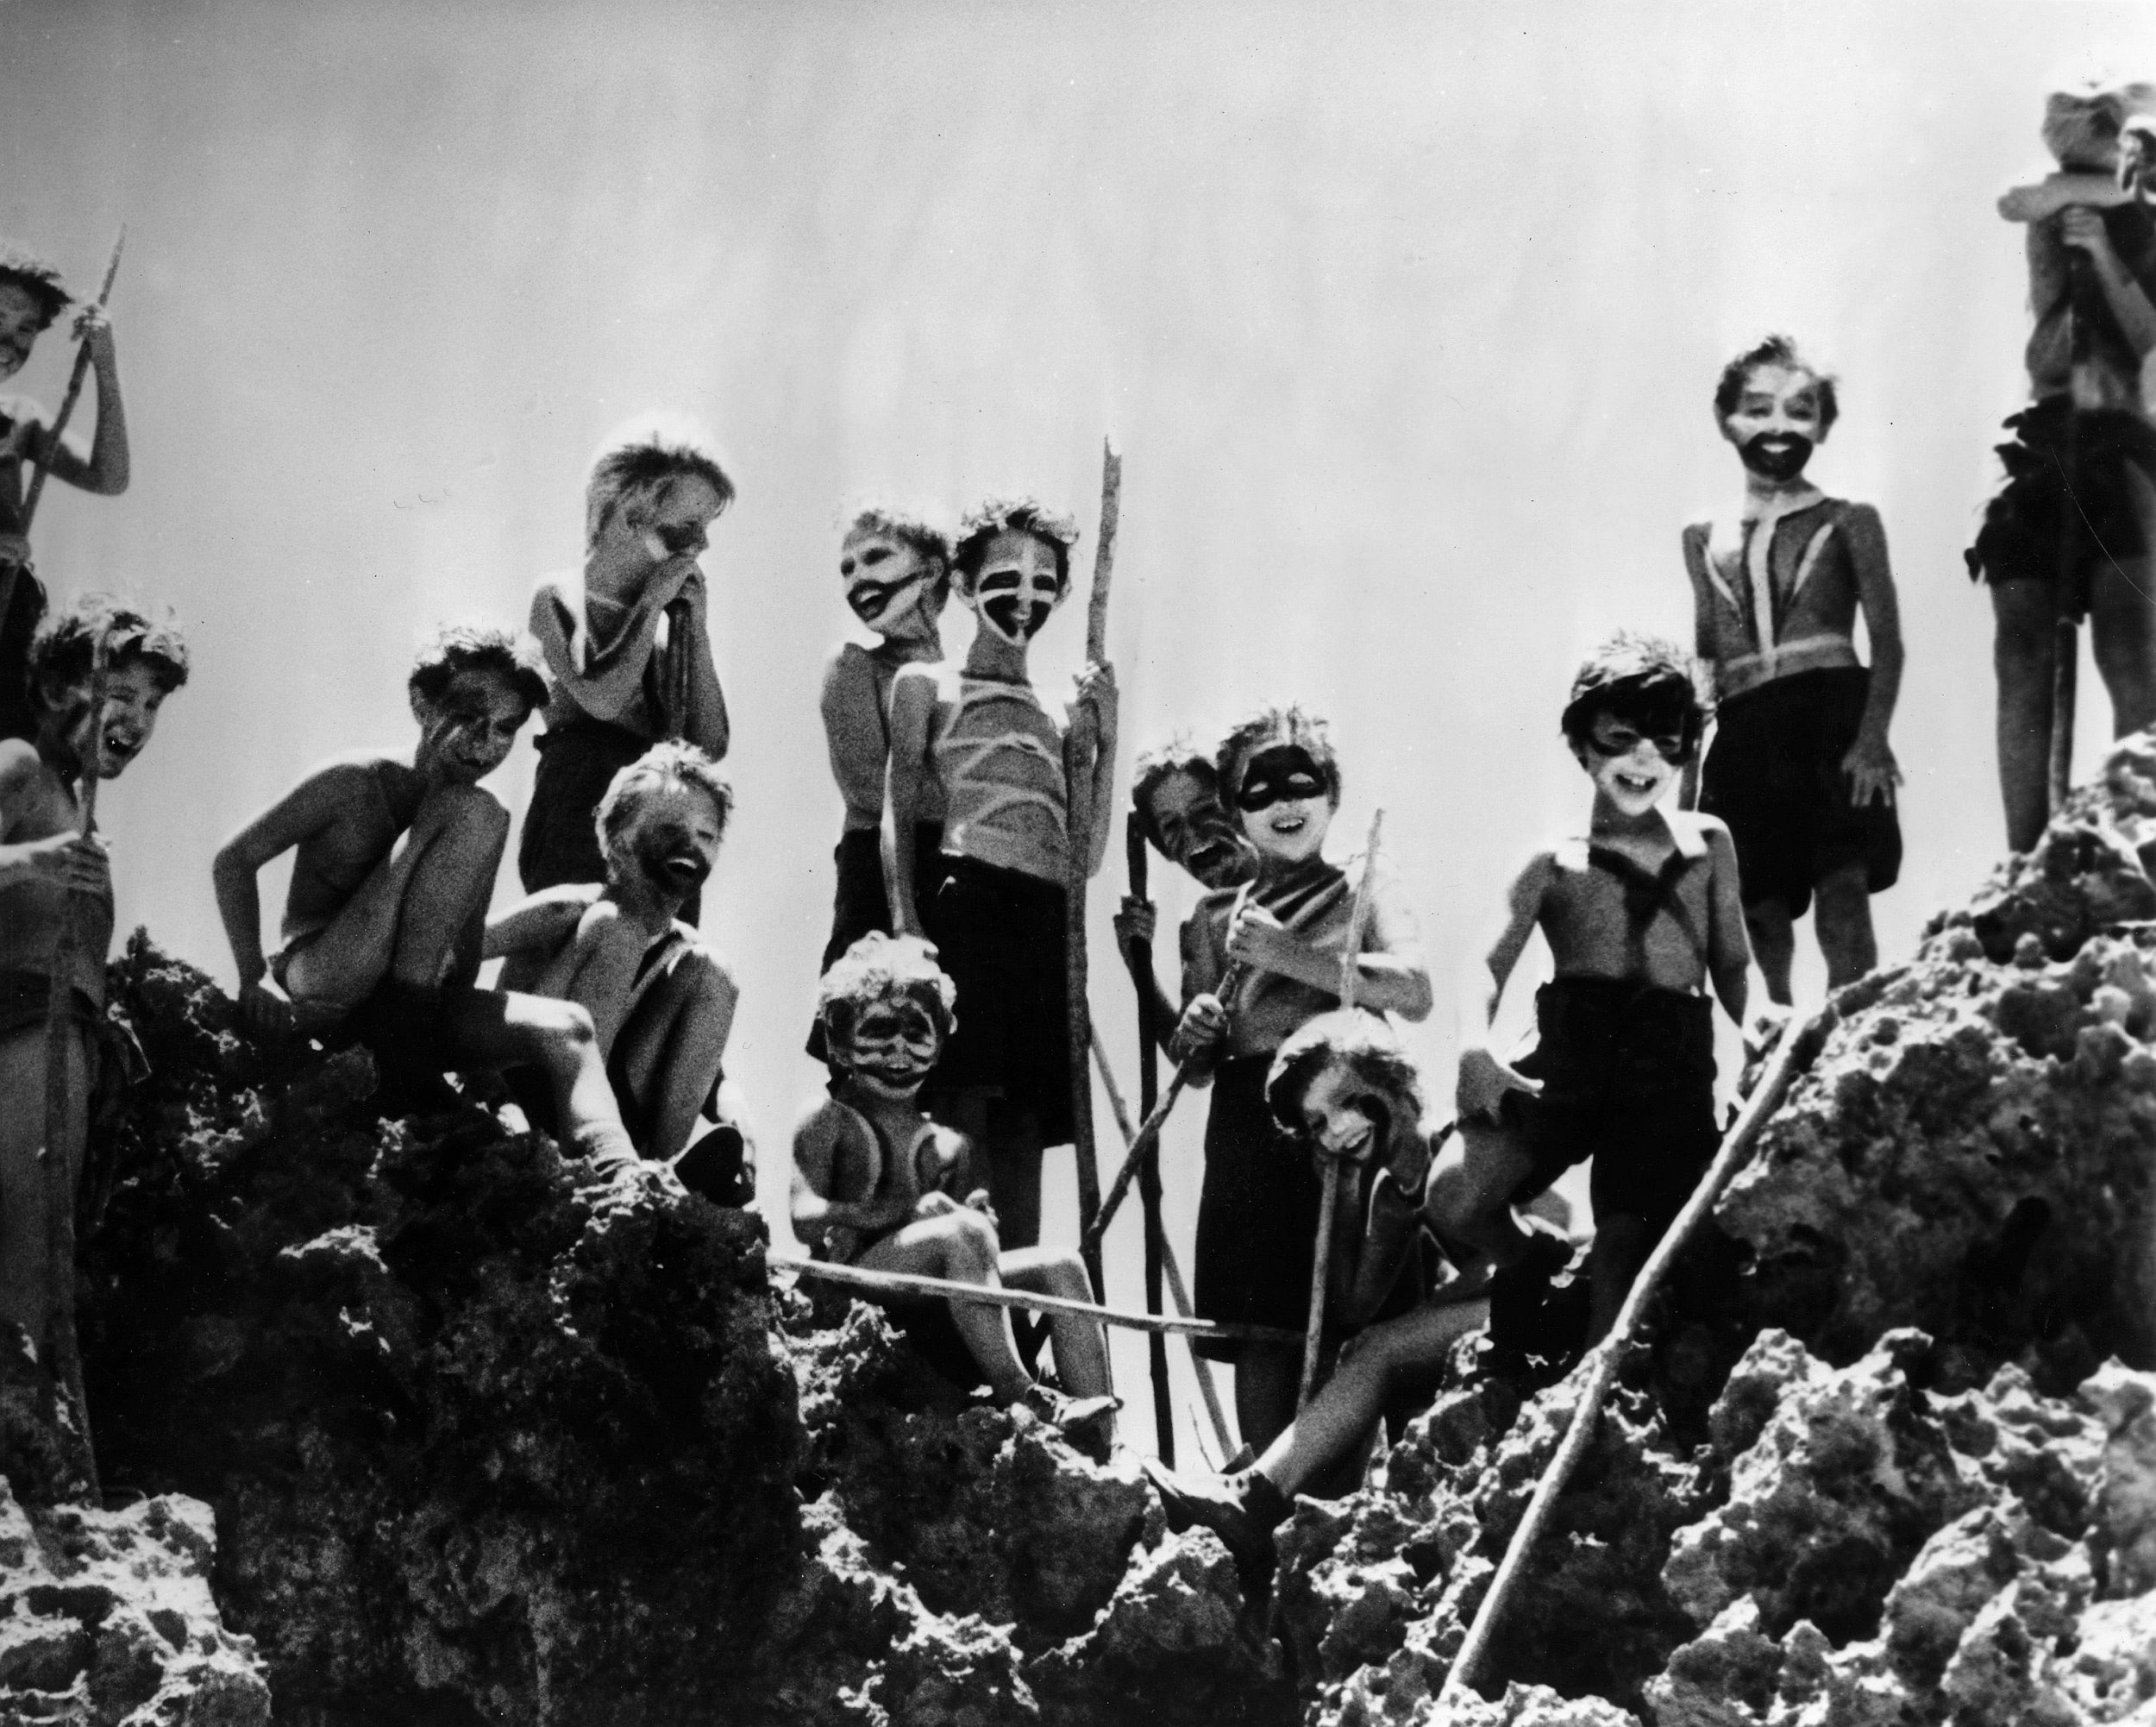 Lord Of The Flies is getting an all-female remake and it isn't going down well